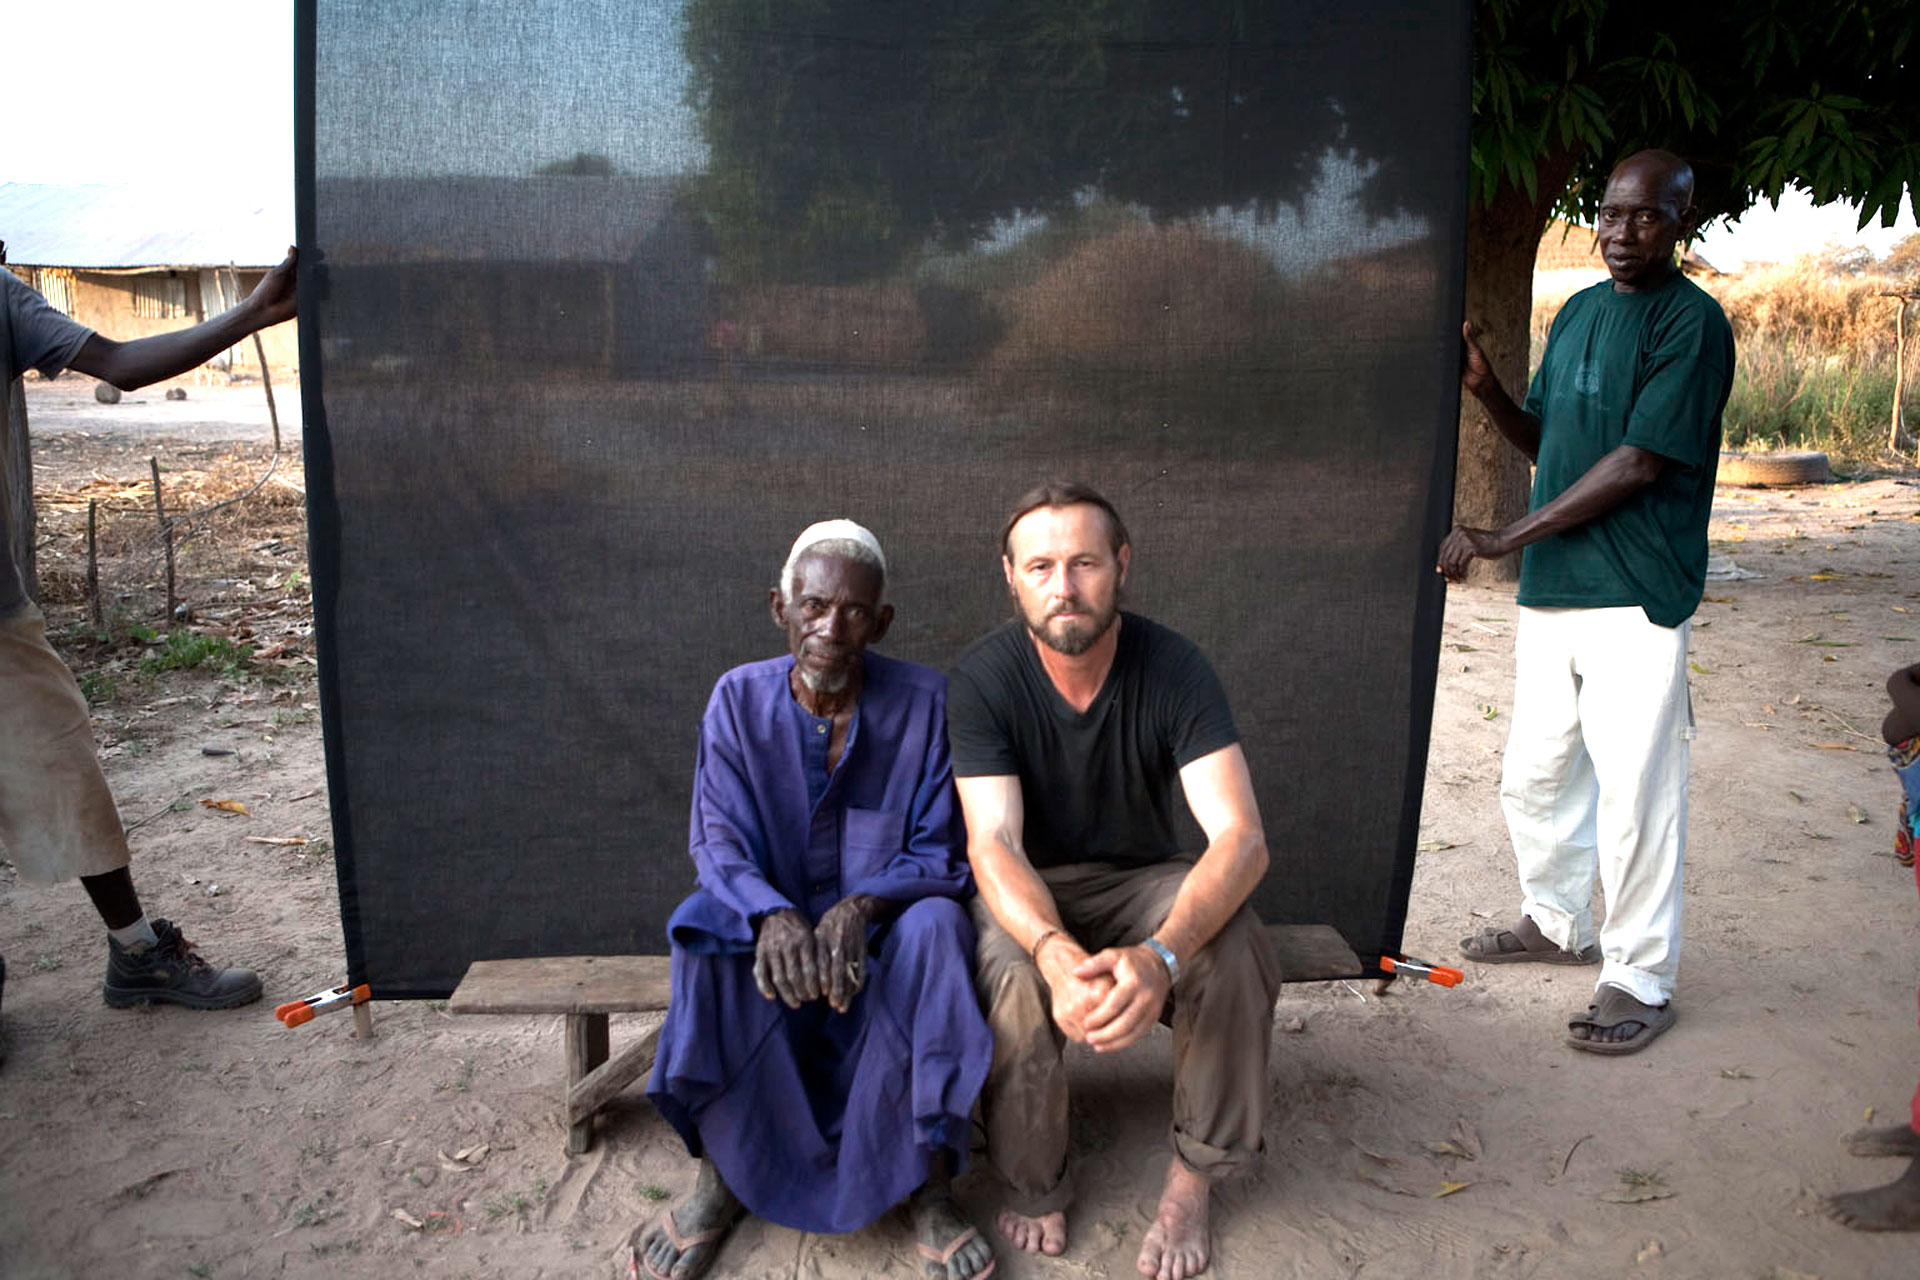 FLORIO_WITH_ALKALO (VILLAGE CHIEF)_THE GAMBIA, WEST AFRICA ©HELEN JONES-FLORIO